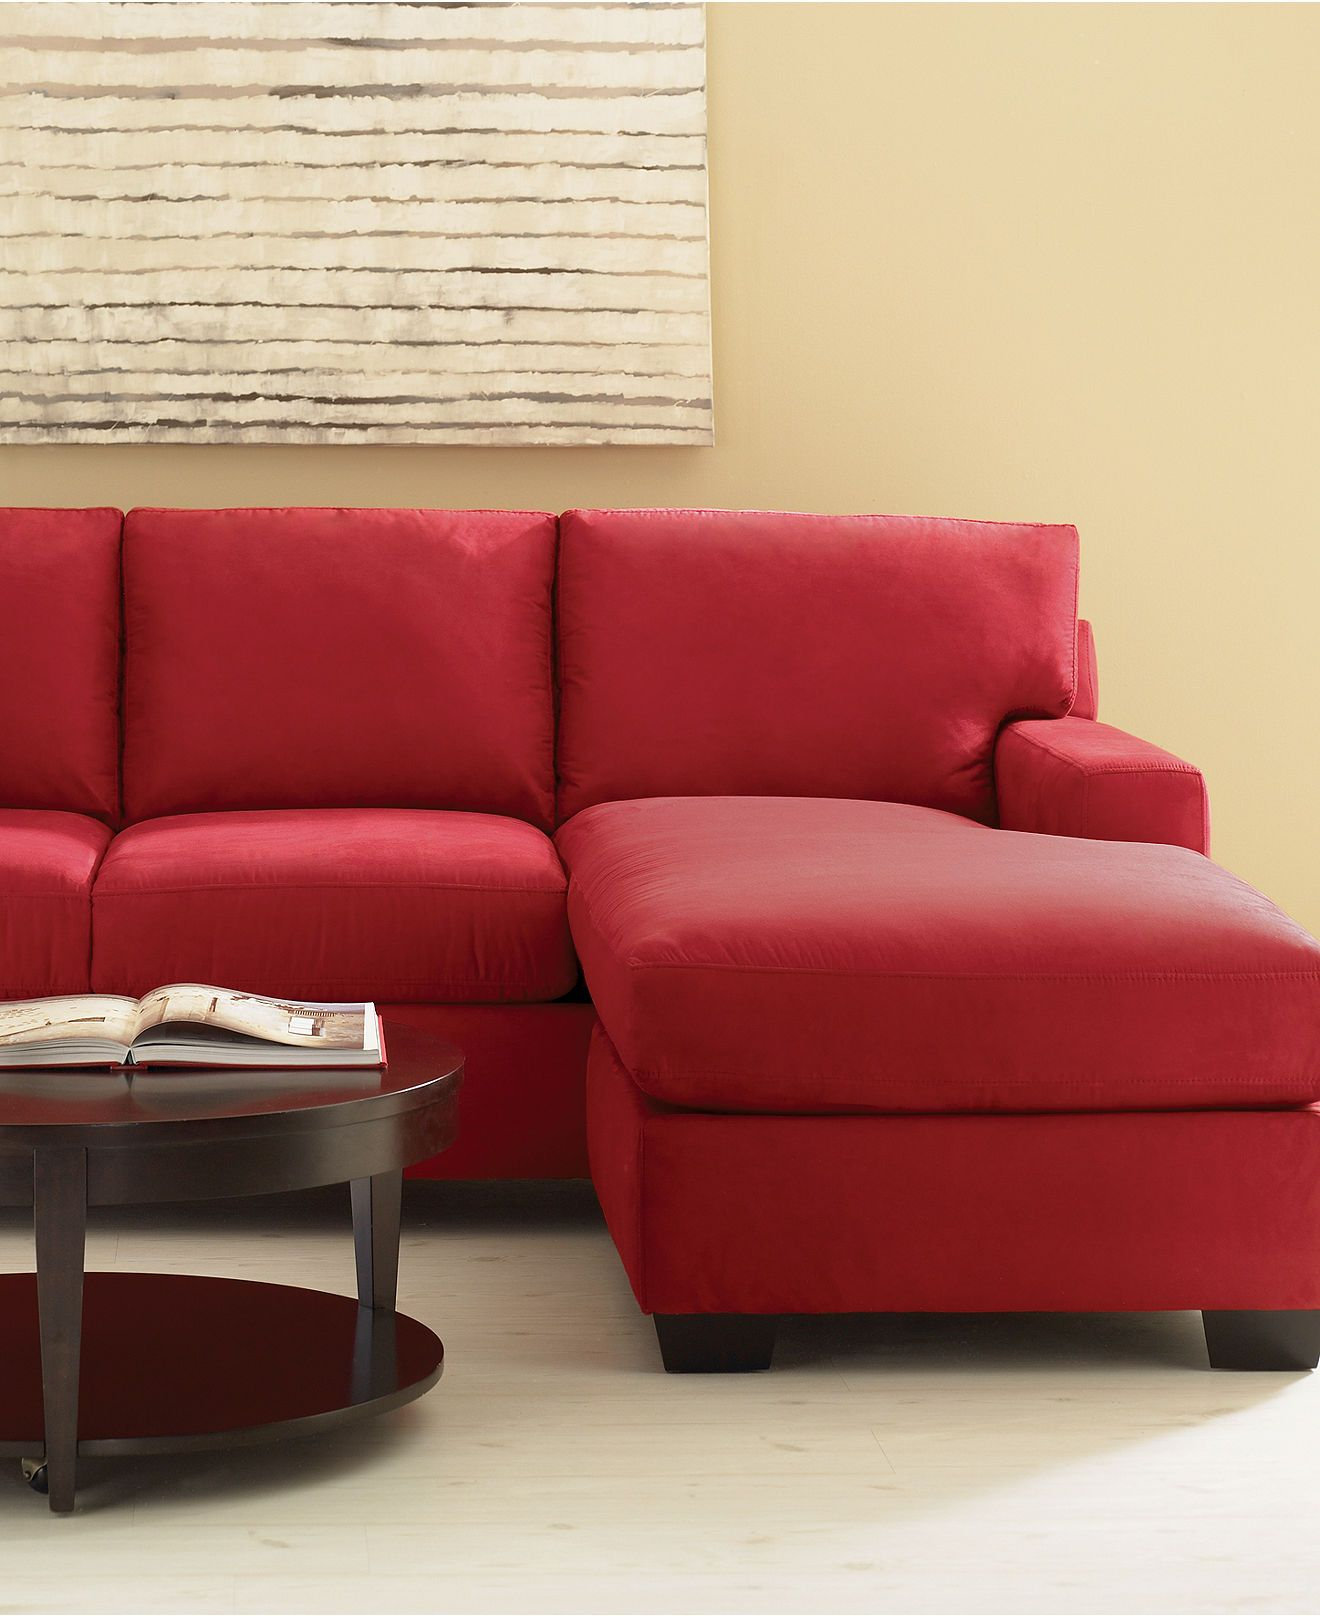 50++ Leather living room furniture for small spaces ideas in 2021